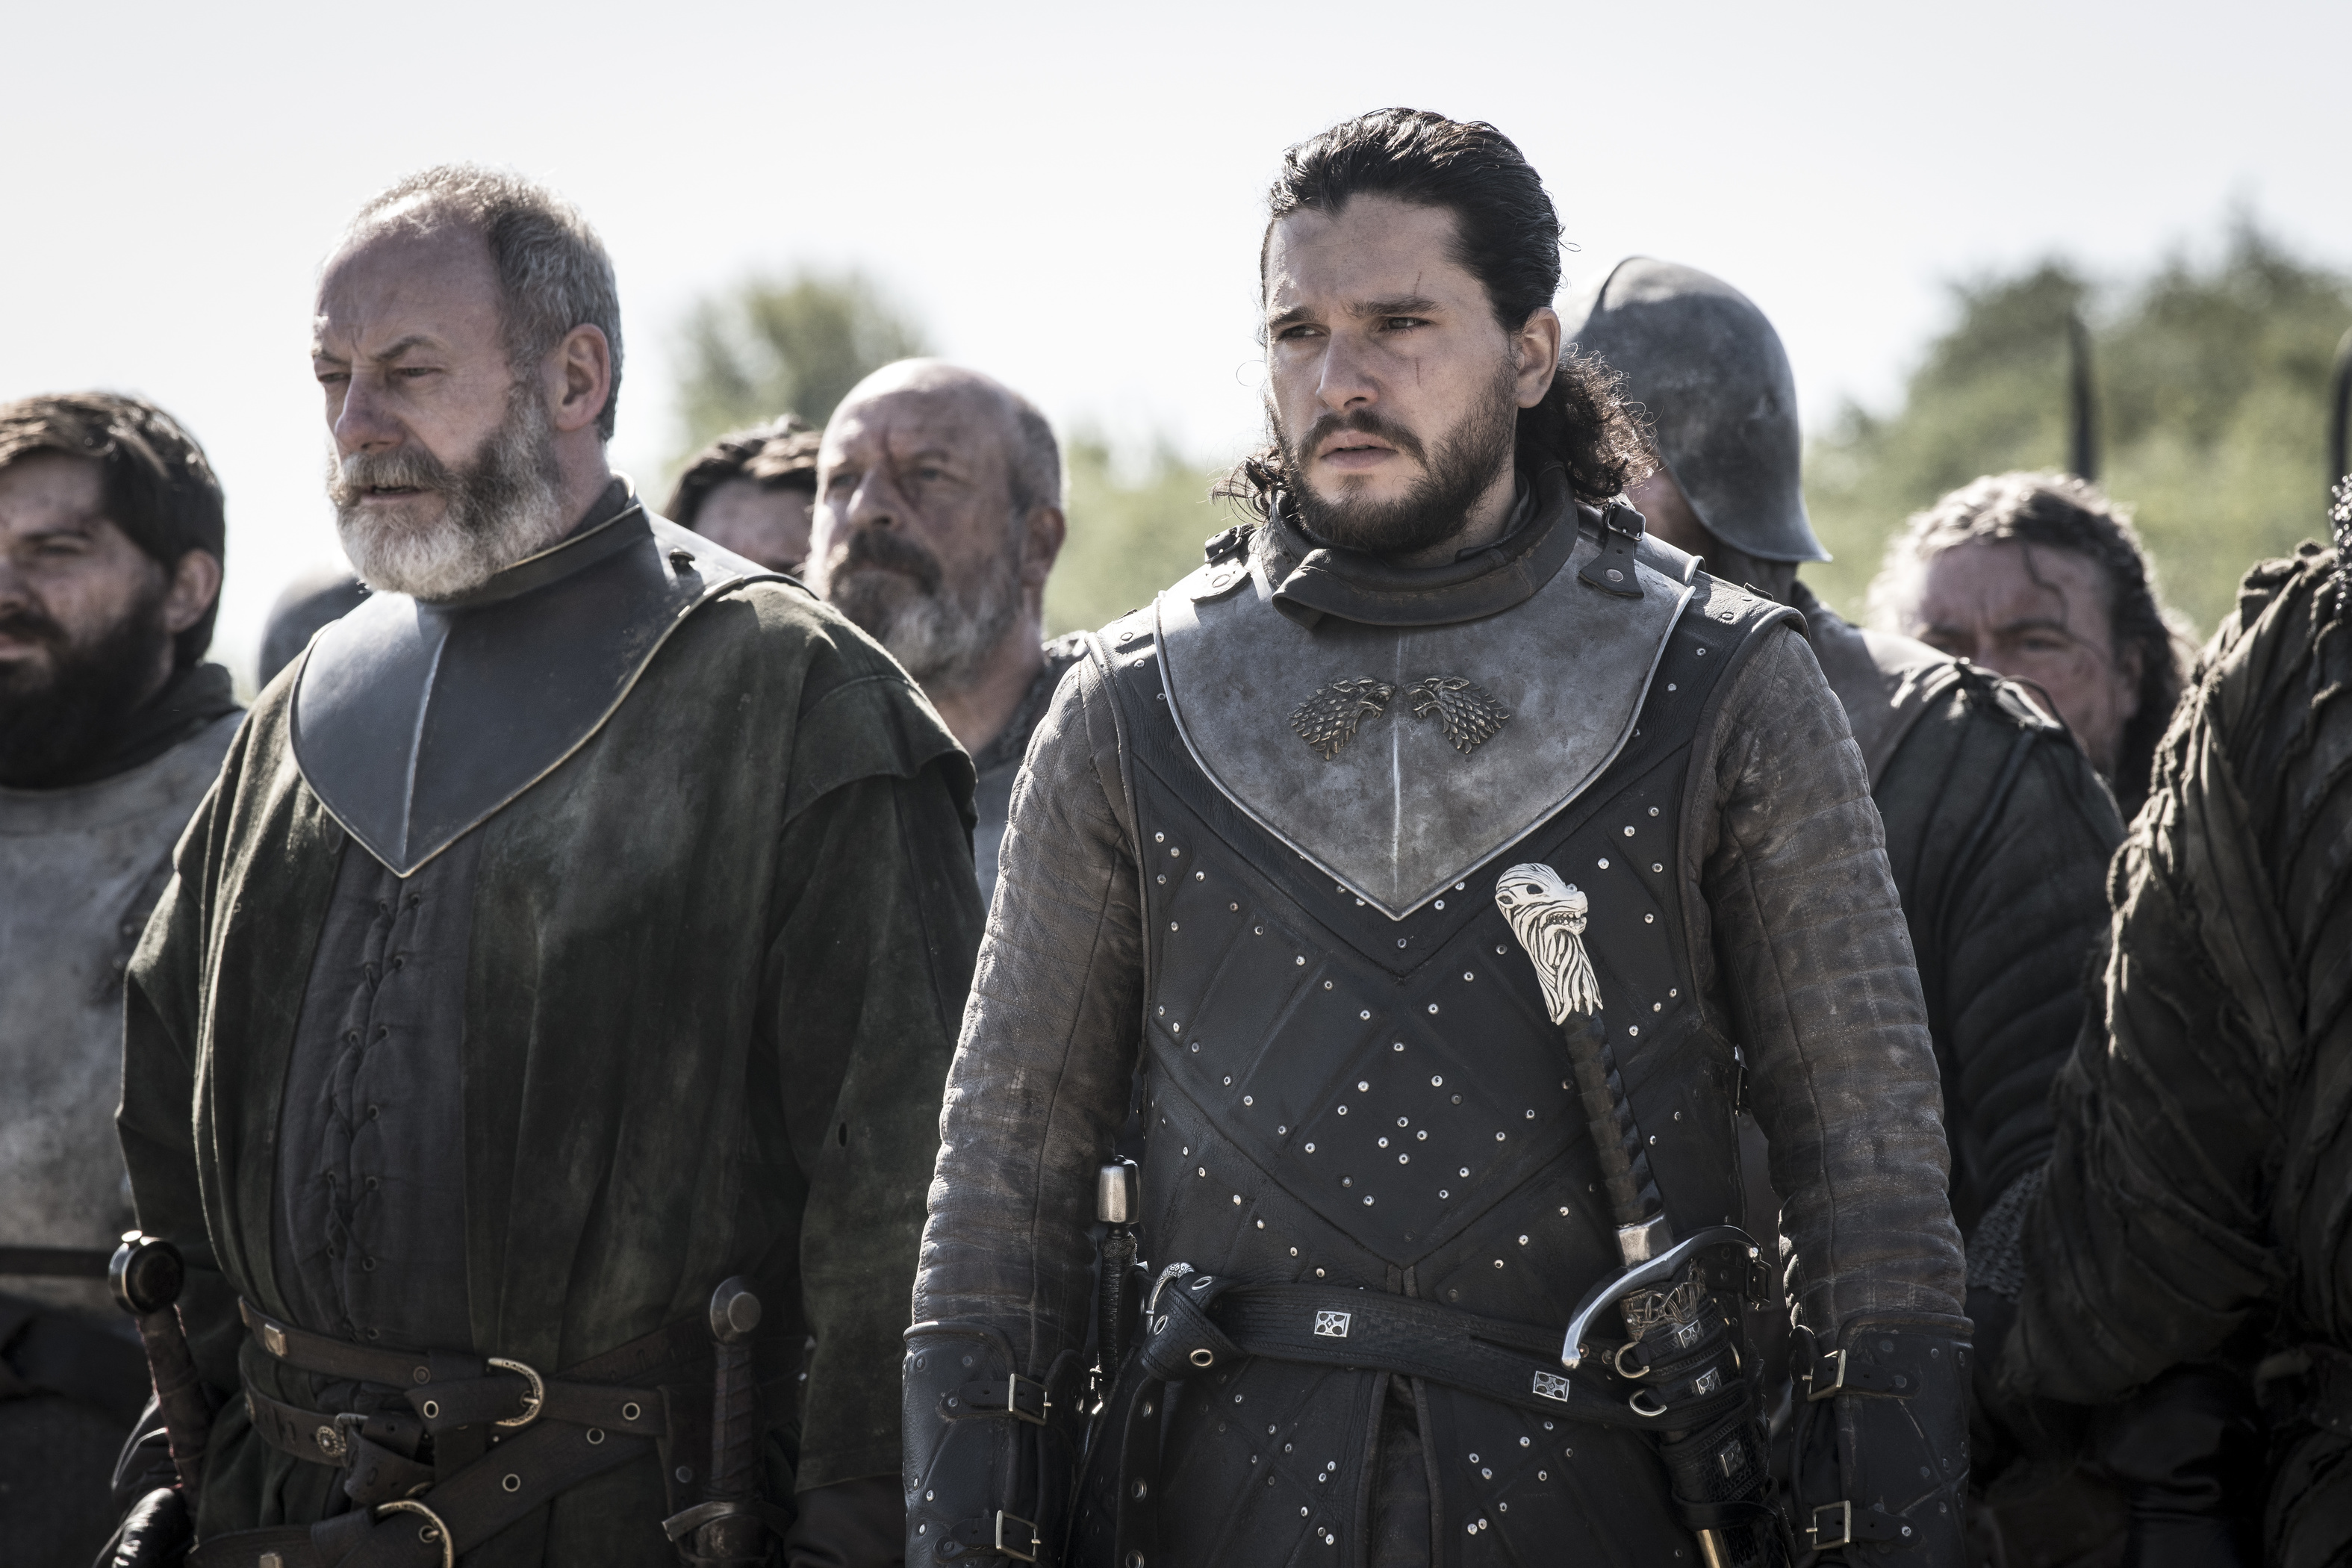 Game Of Thrones Among The Most Discussed Shows On Reddit In 2020